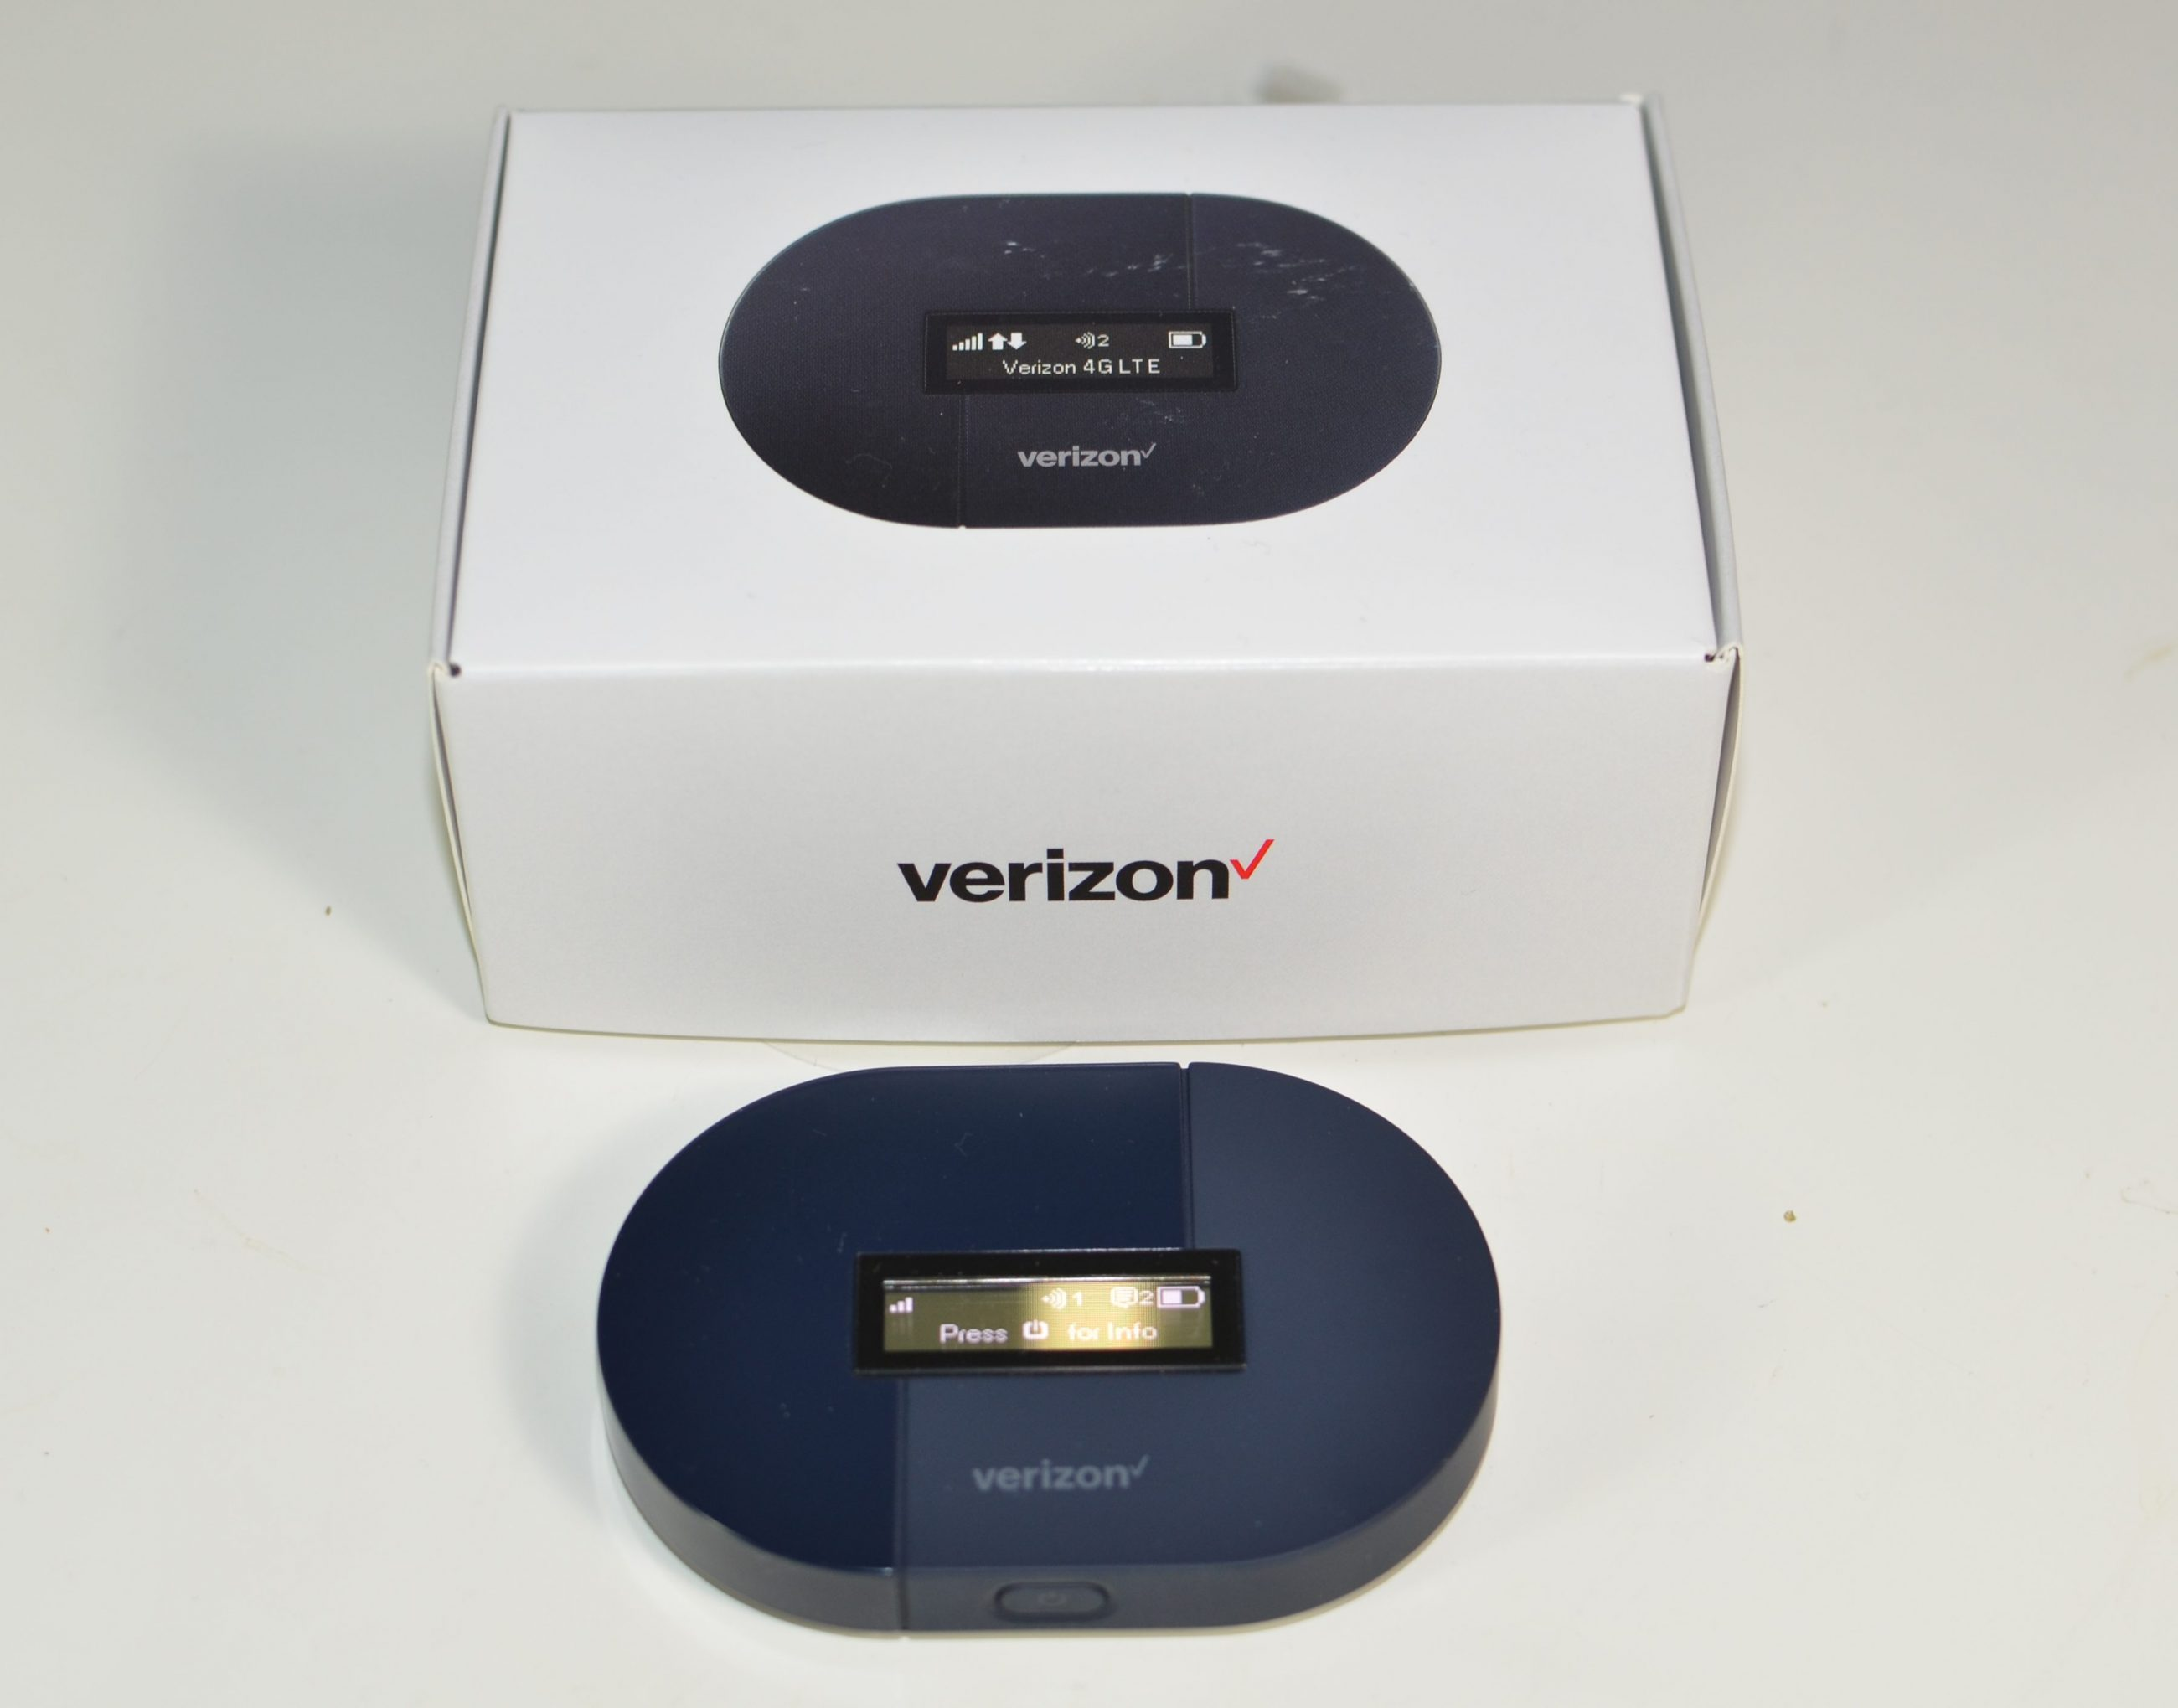 Unlimited Hotspot Plans >> 65 For Verizon Unlimited Hotspot I Ll Give That A Try Panbo